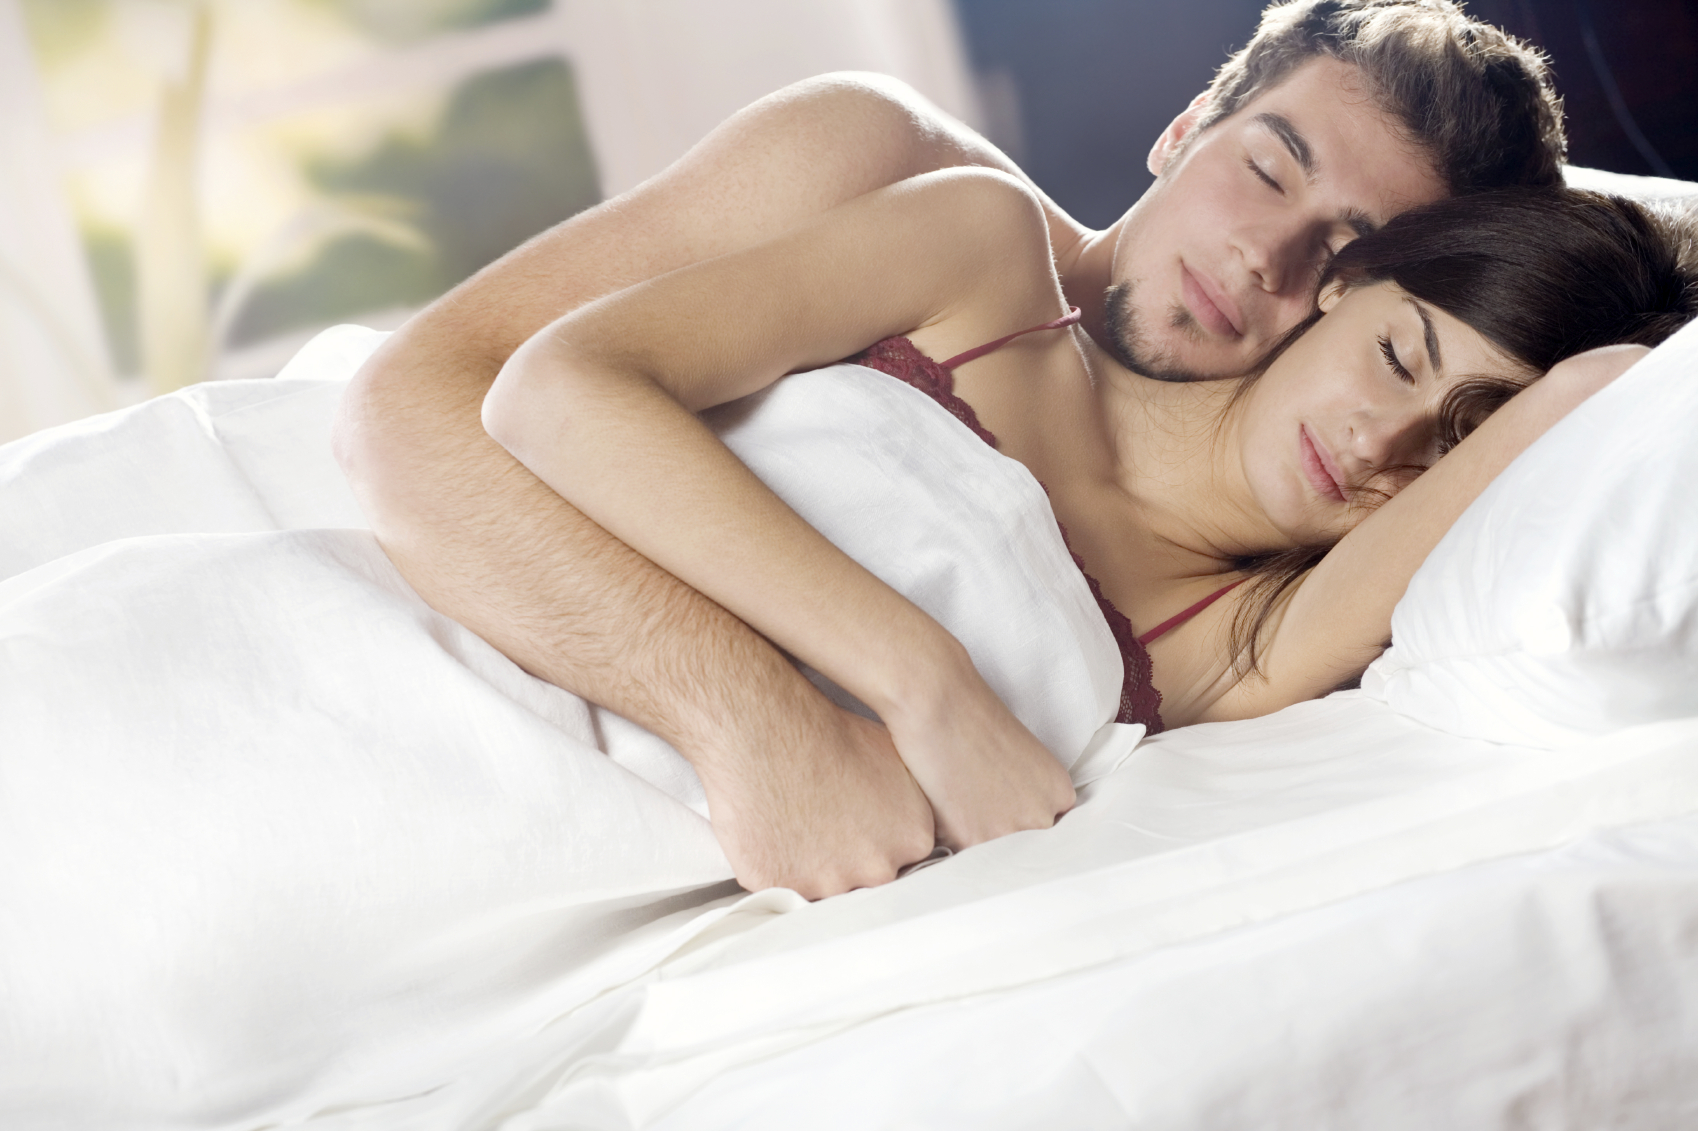 couple-have-sex-on-bed